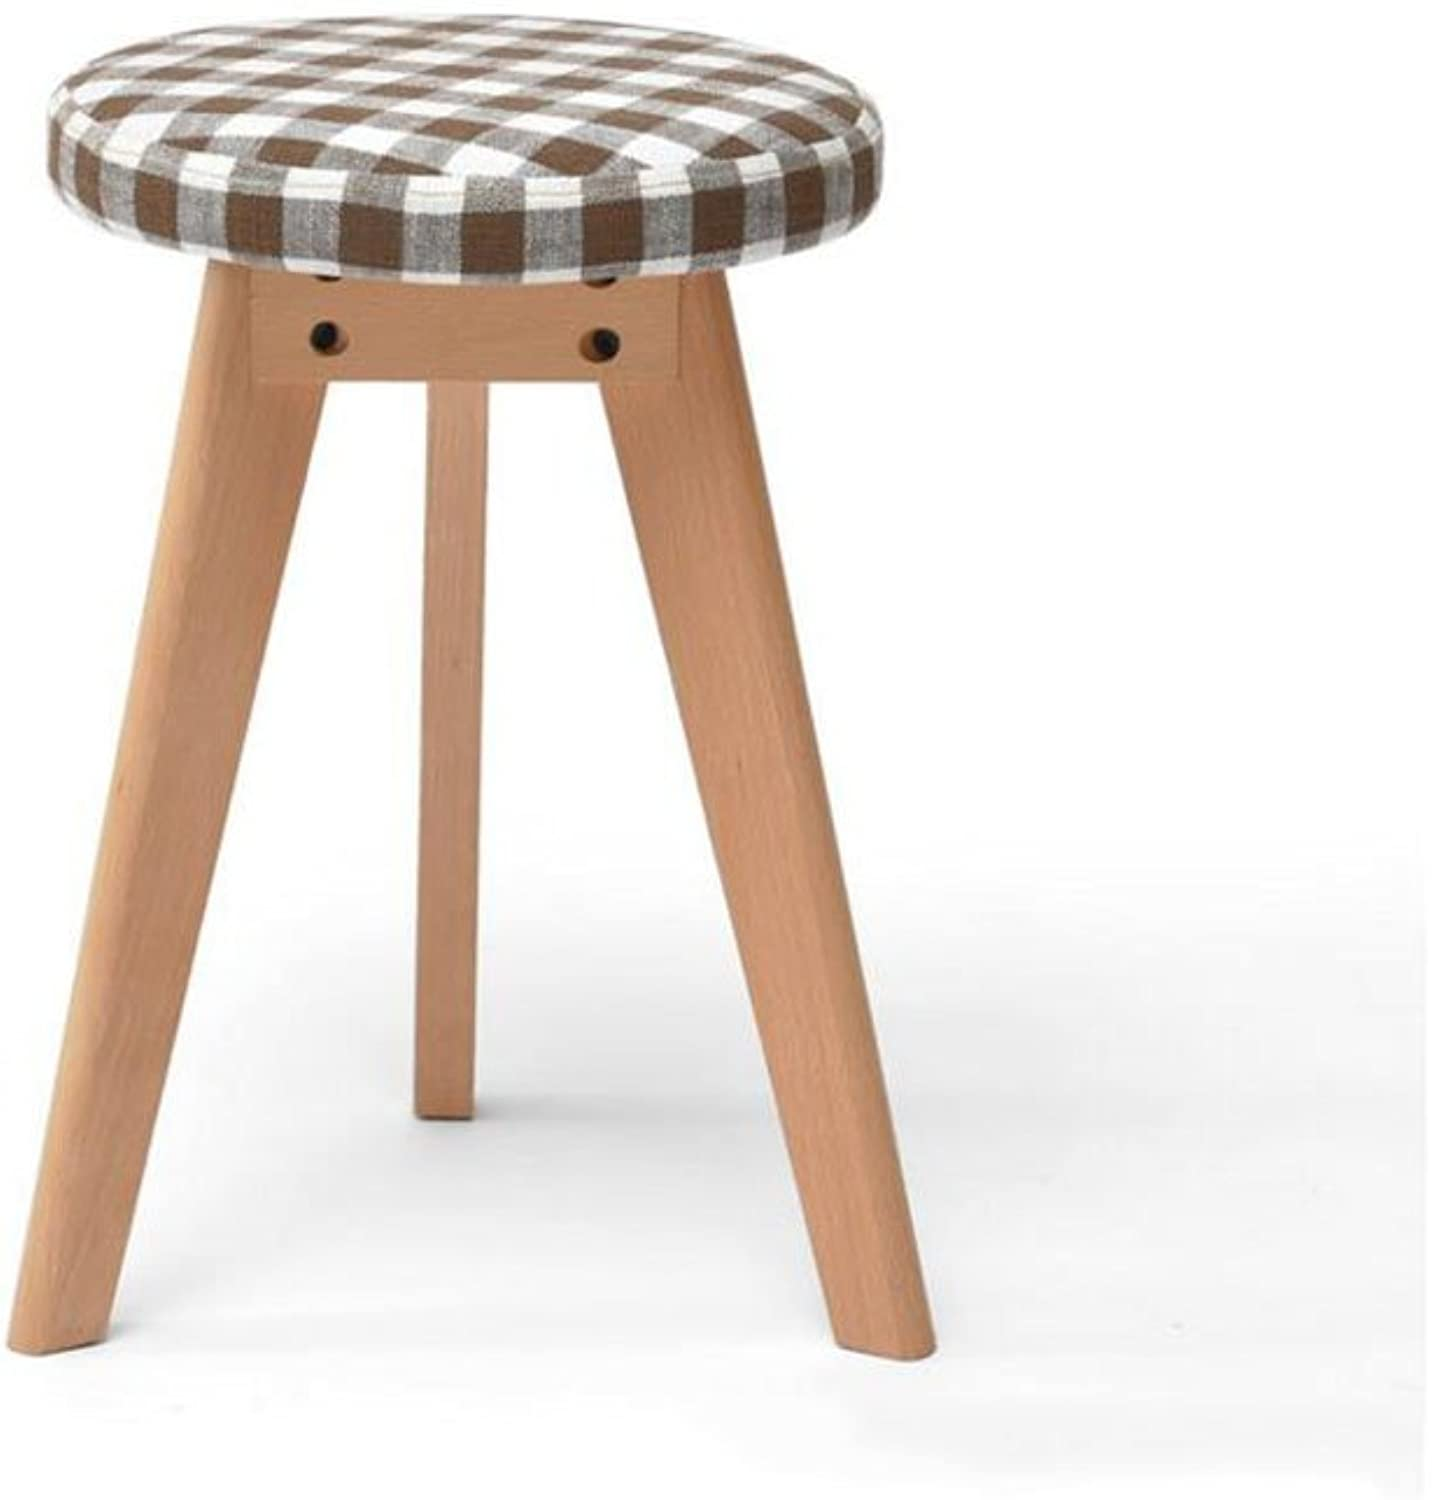 CJC Wooden Stool Meal Stool Household Solid Wood Can Not Be Superimposed Home Office Furniture Kitchen